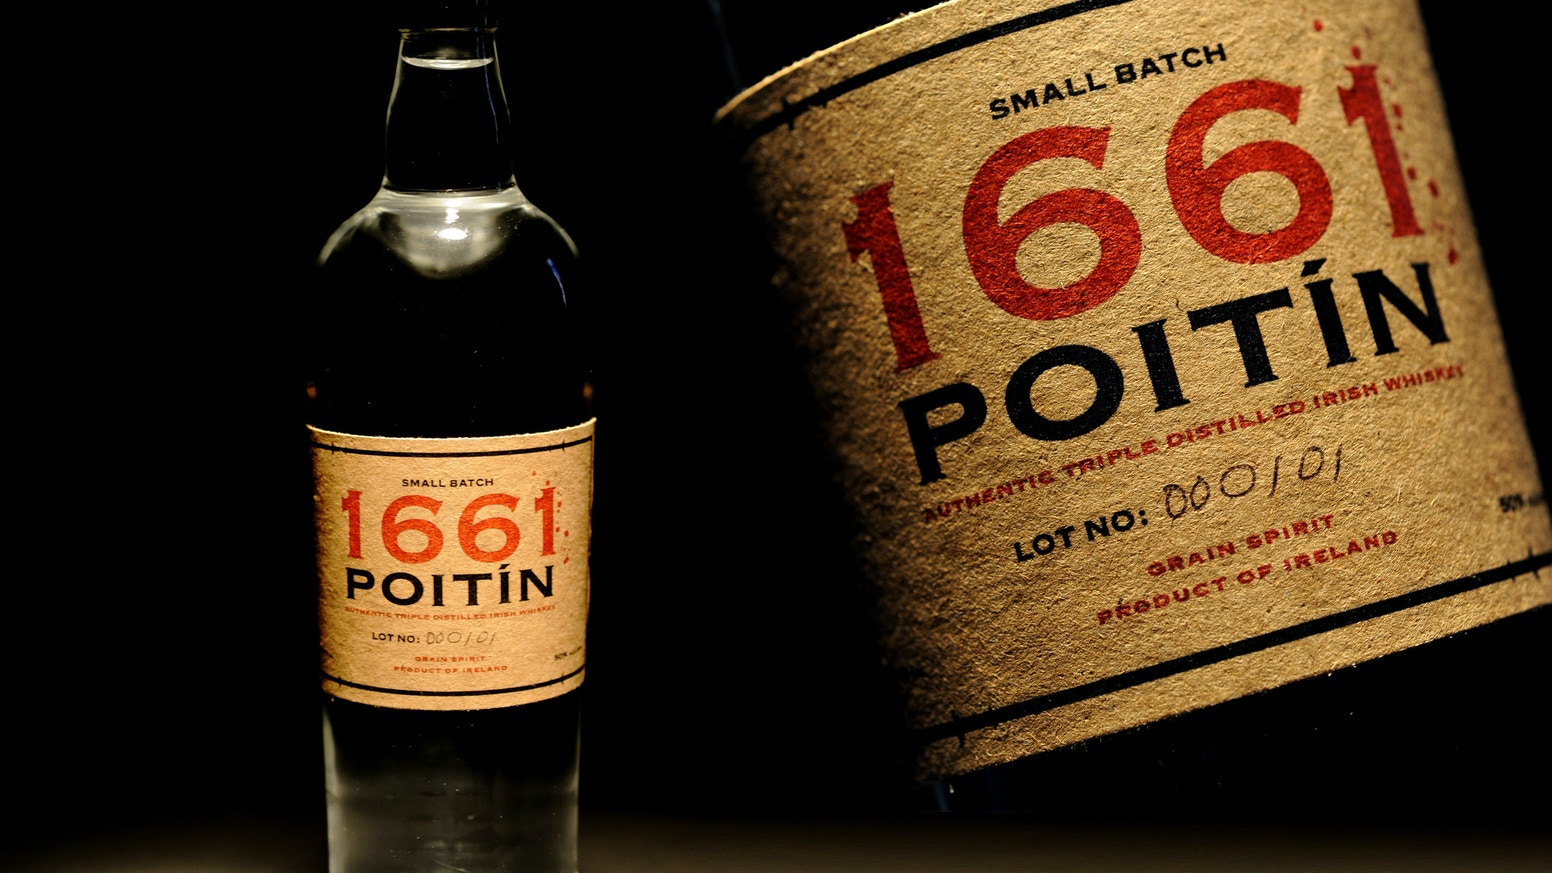 1661 Poitín: Small Batch Traditional Irish Spirit